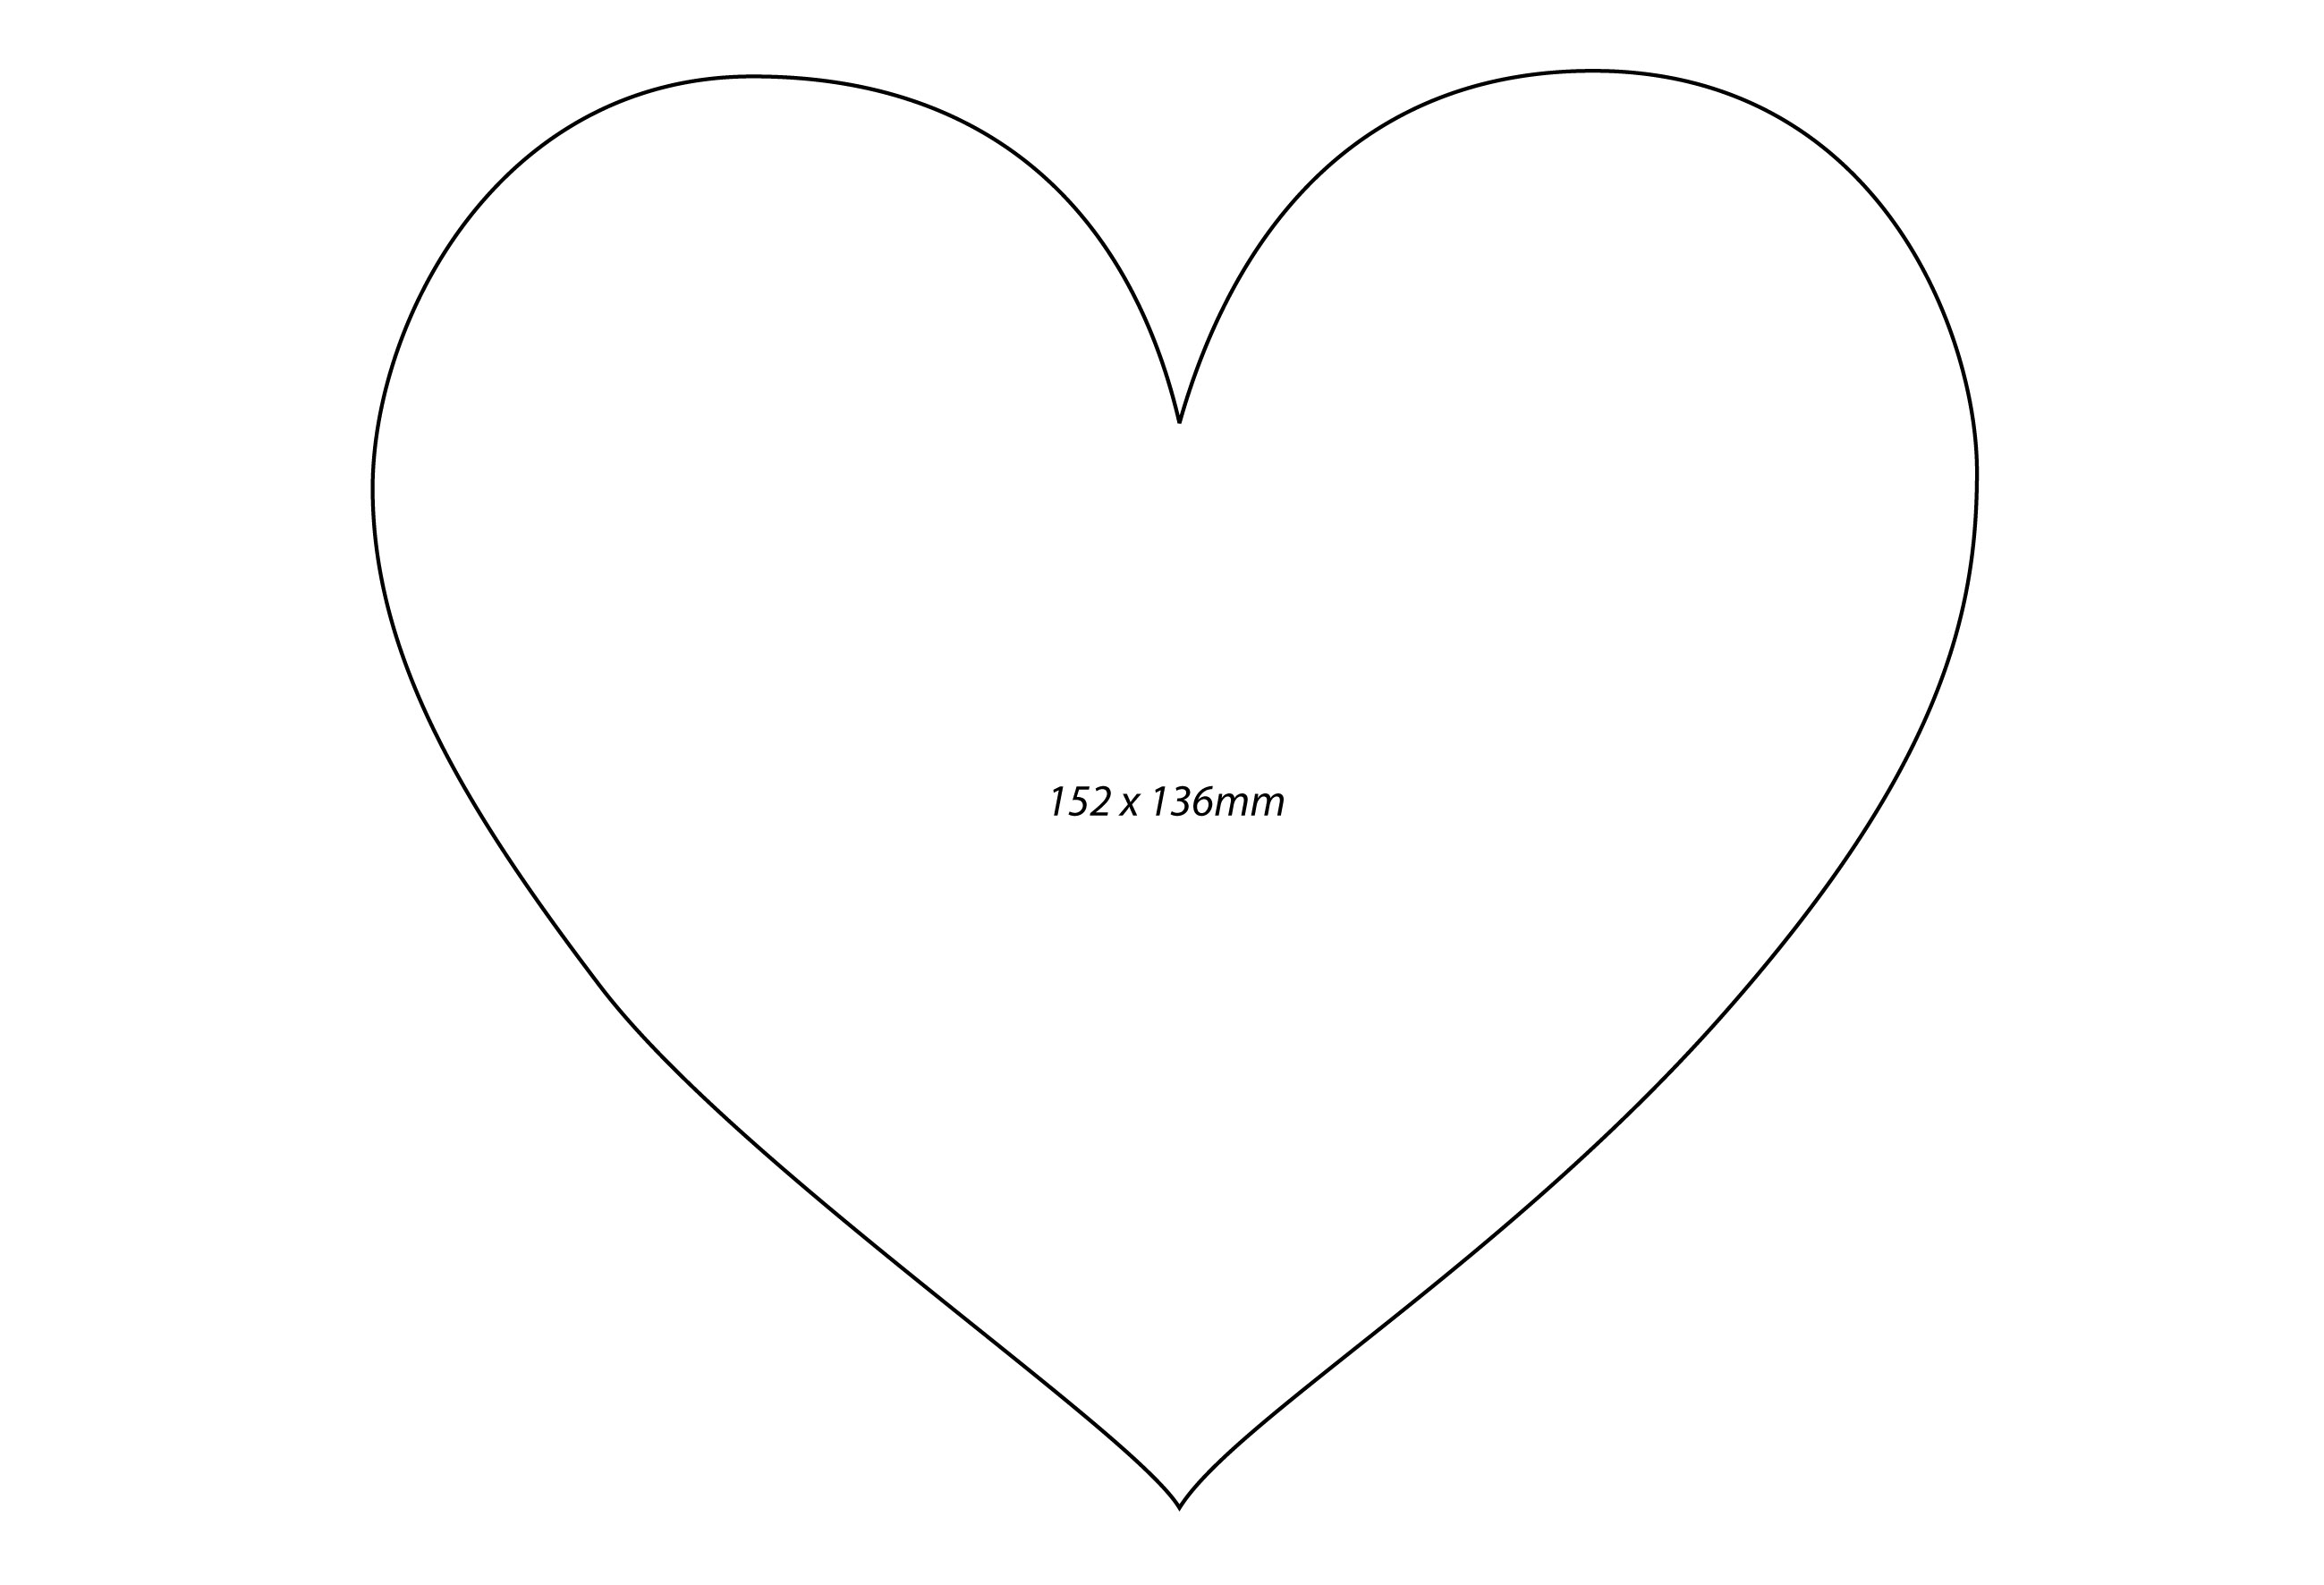 Heart-shaped clipart loveheart Heart Free Large Template Printable